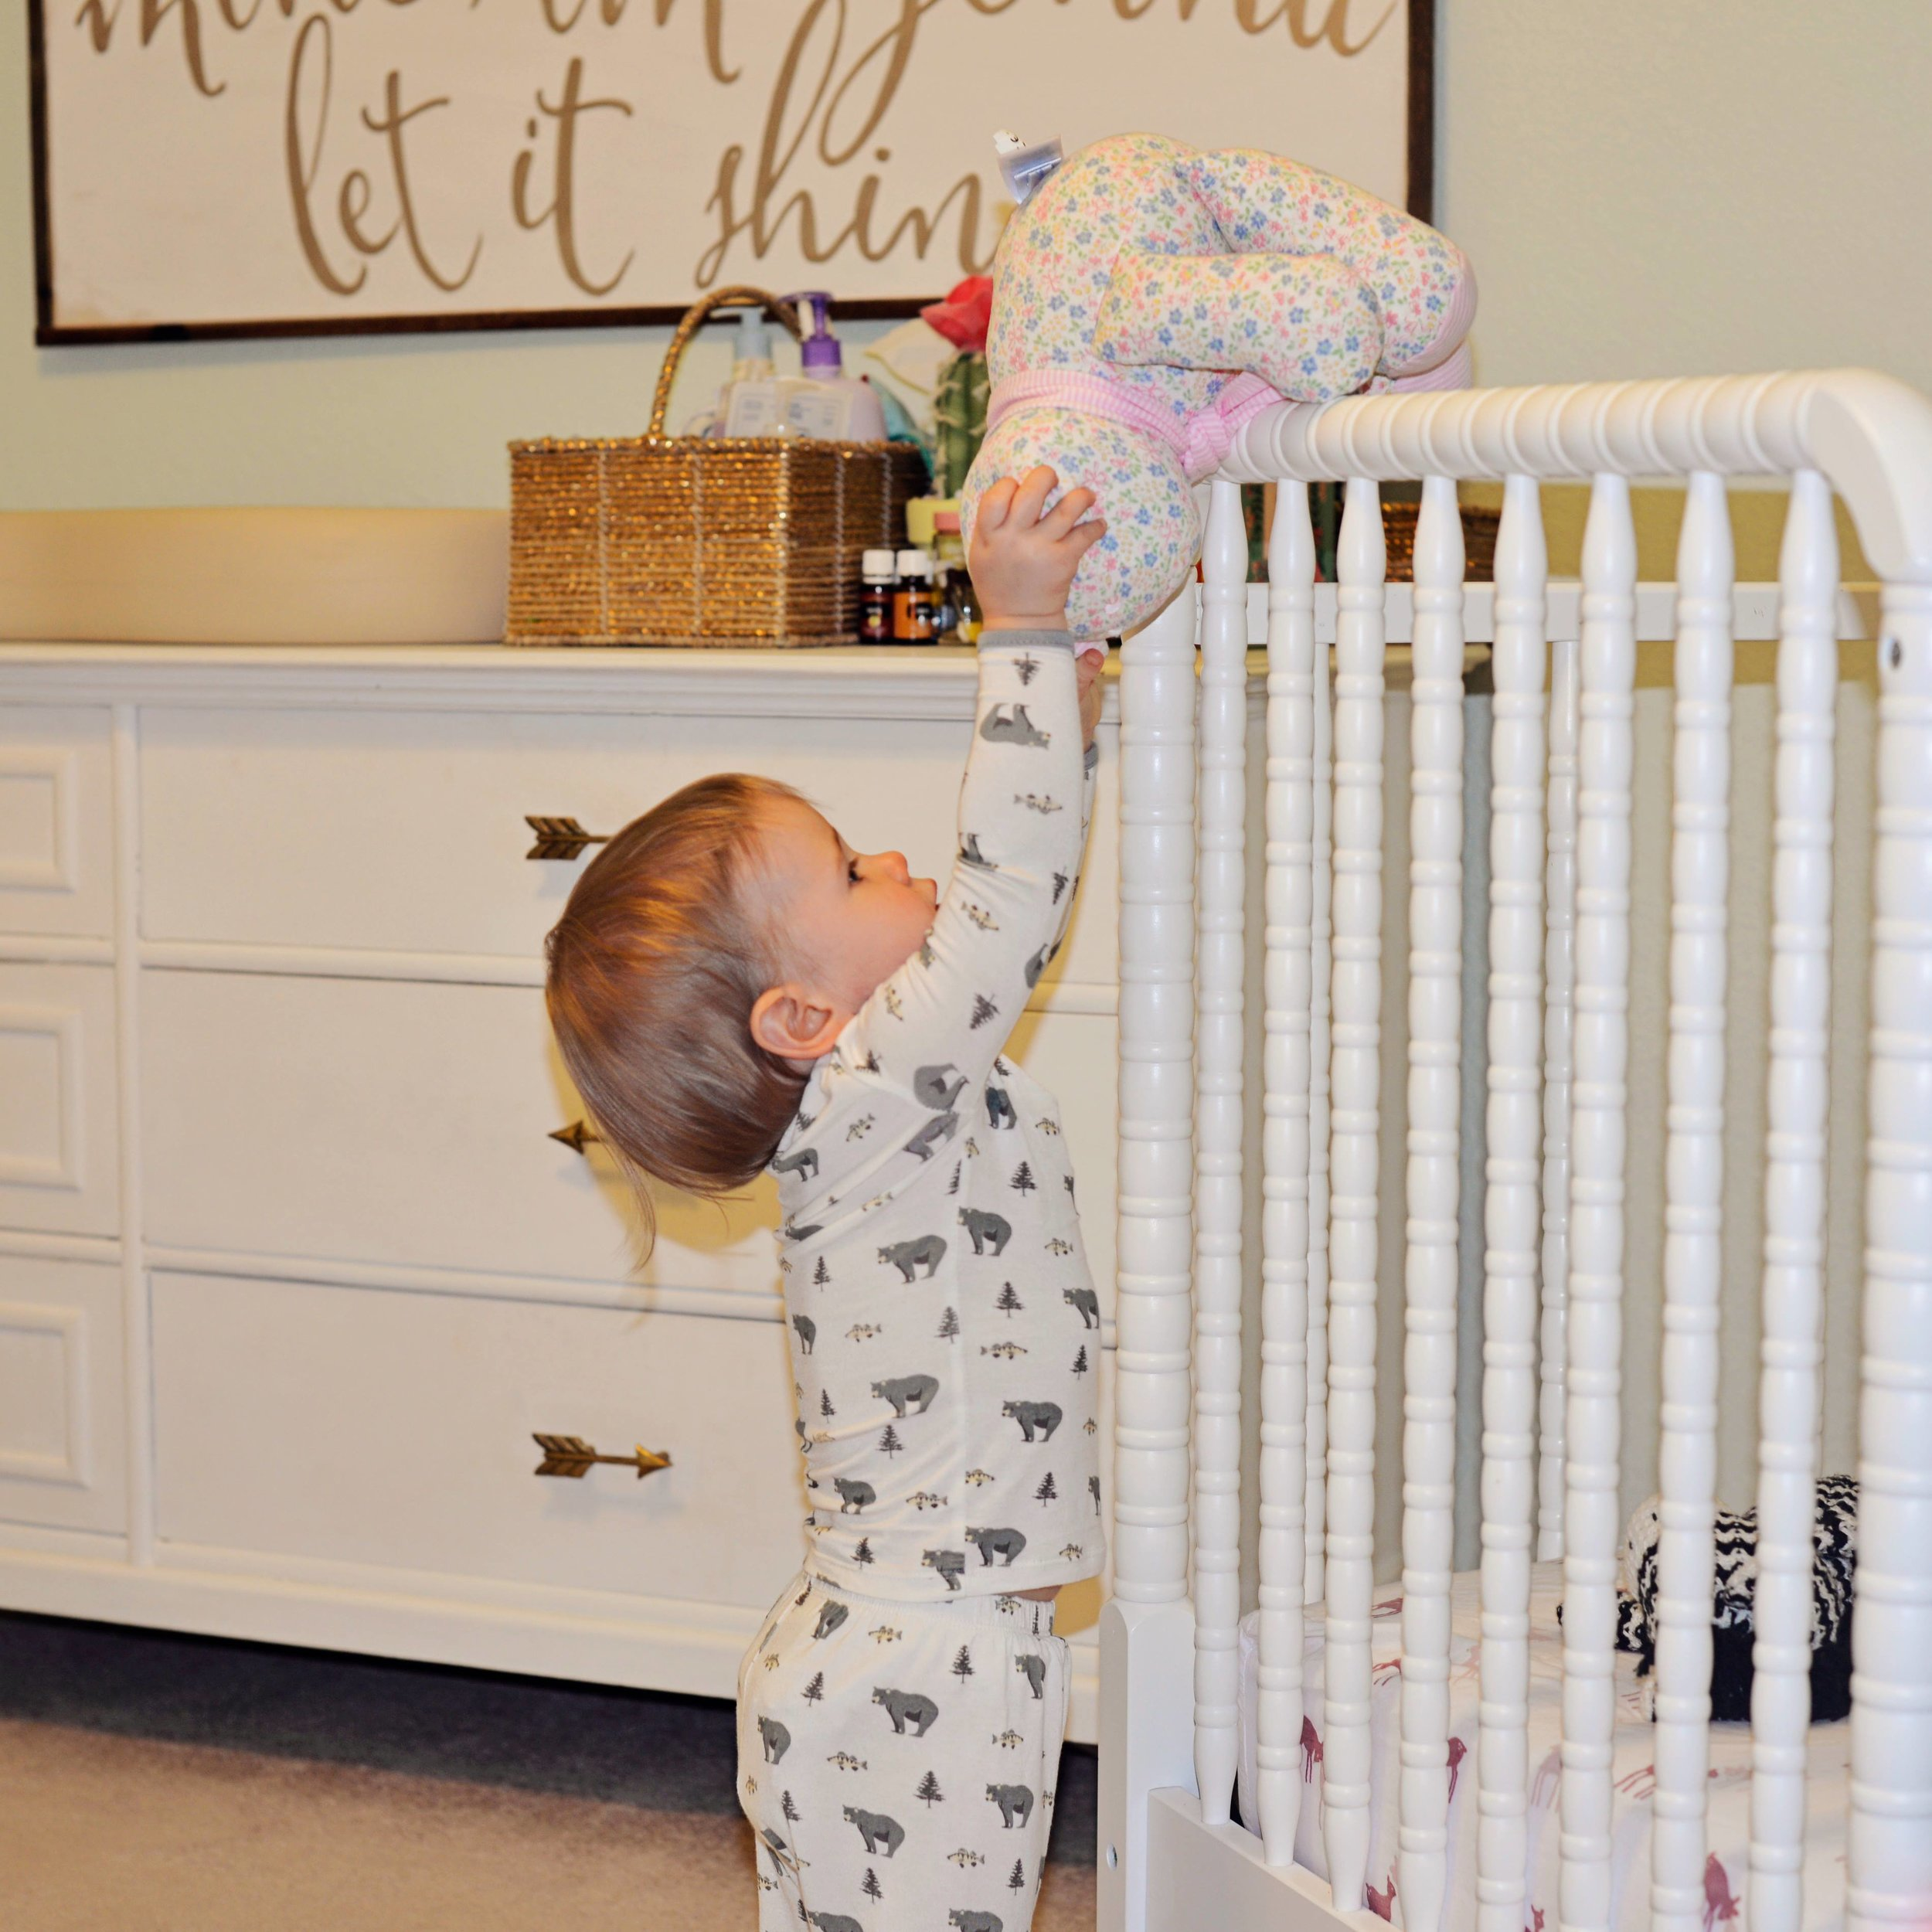 My girls new favorite game - throwing all over her babies and animals into her crib. She is wearing the softest pajamas from Kyte Baby and they come in the cutest prints